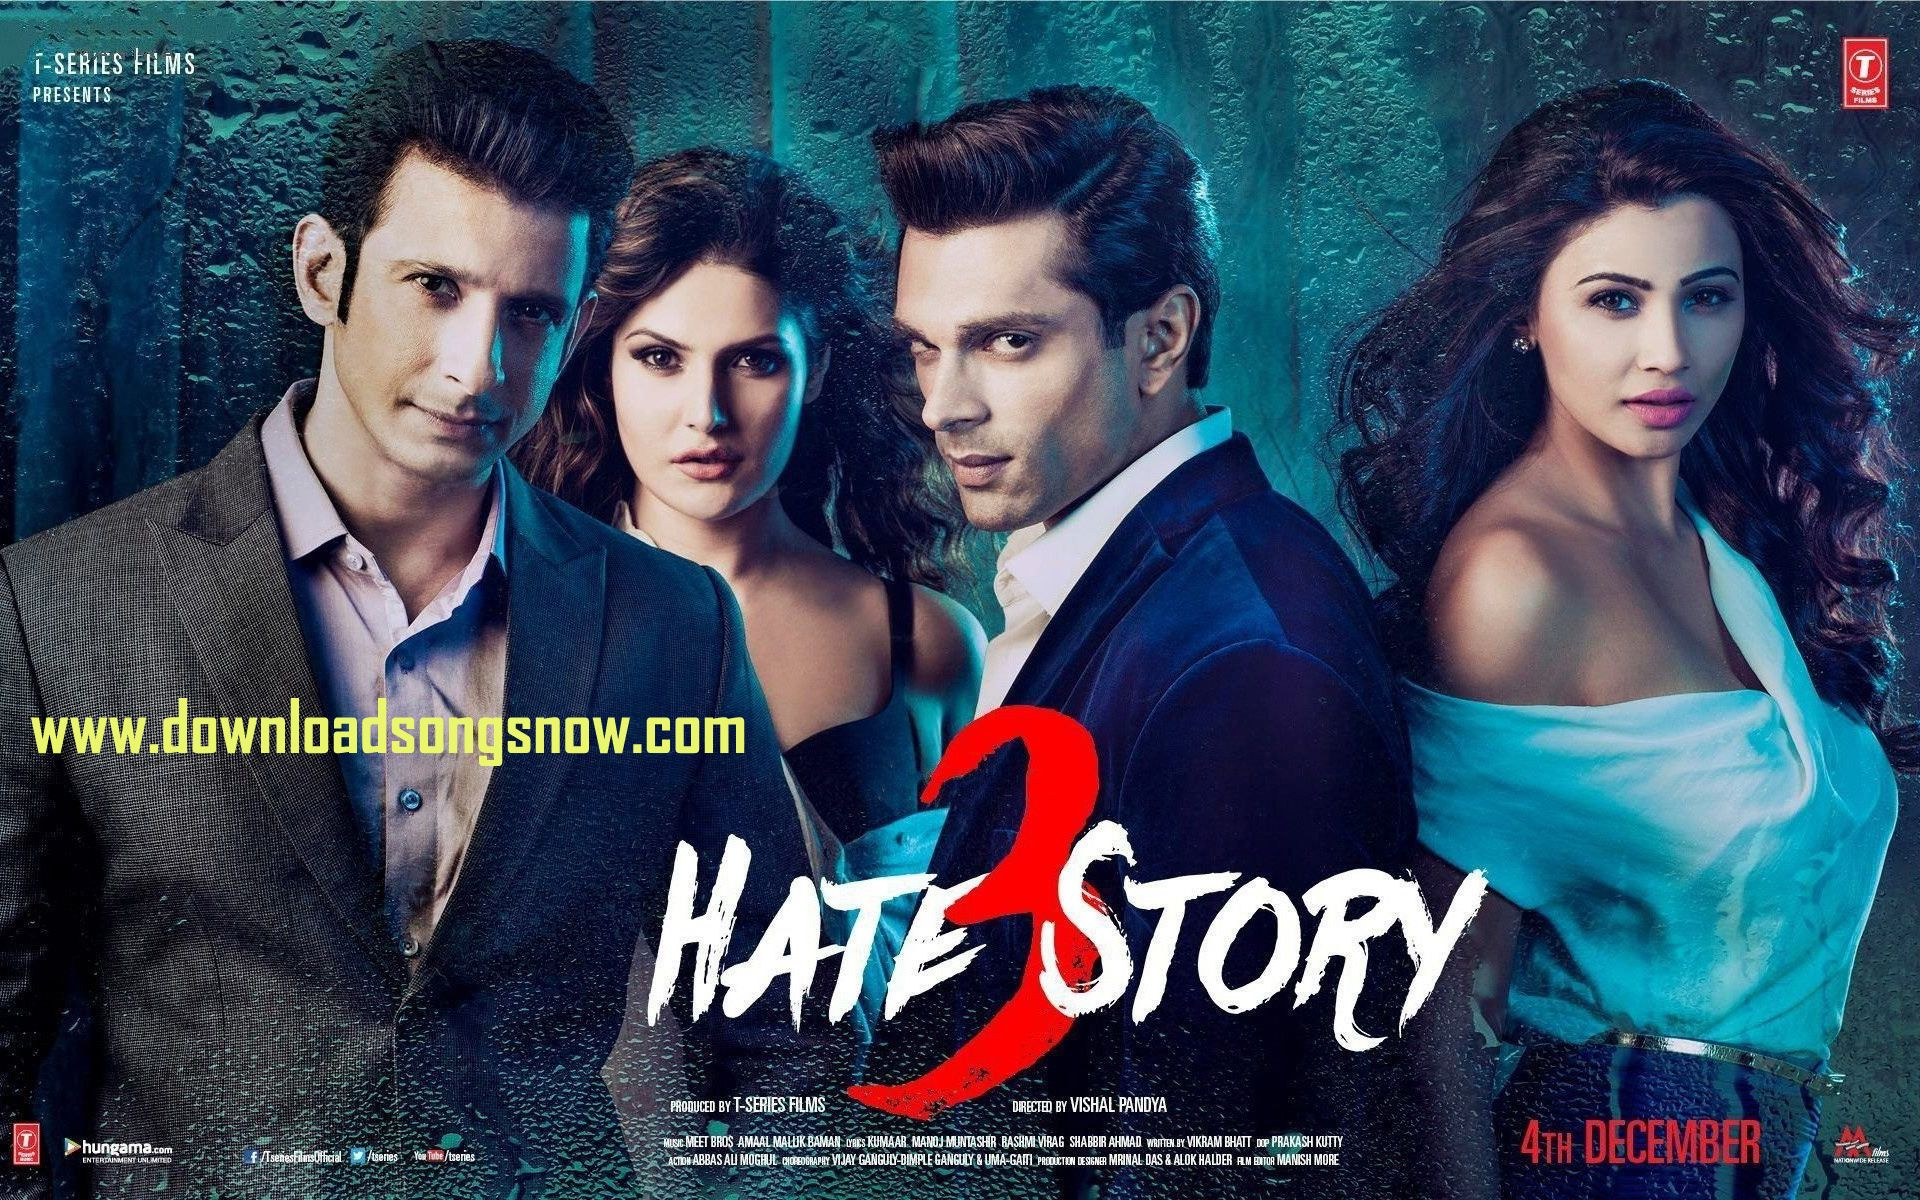 Hate Story 3 (2015) - Movie Full Mp3 Album Songs Download Online Now ... f9dd5f2a0760b